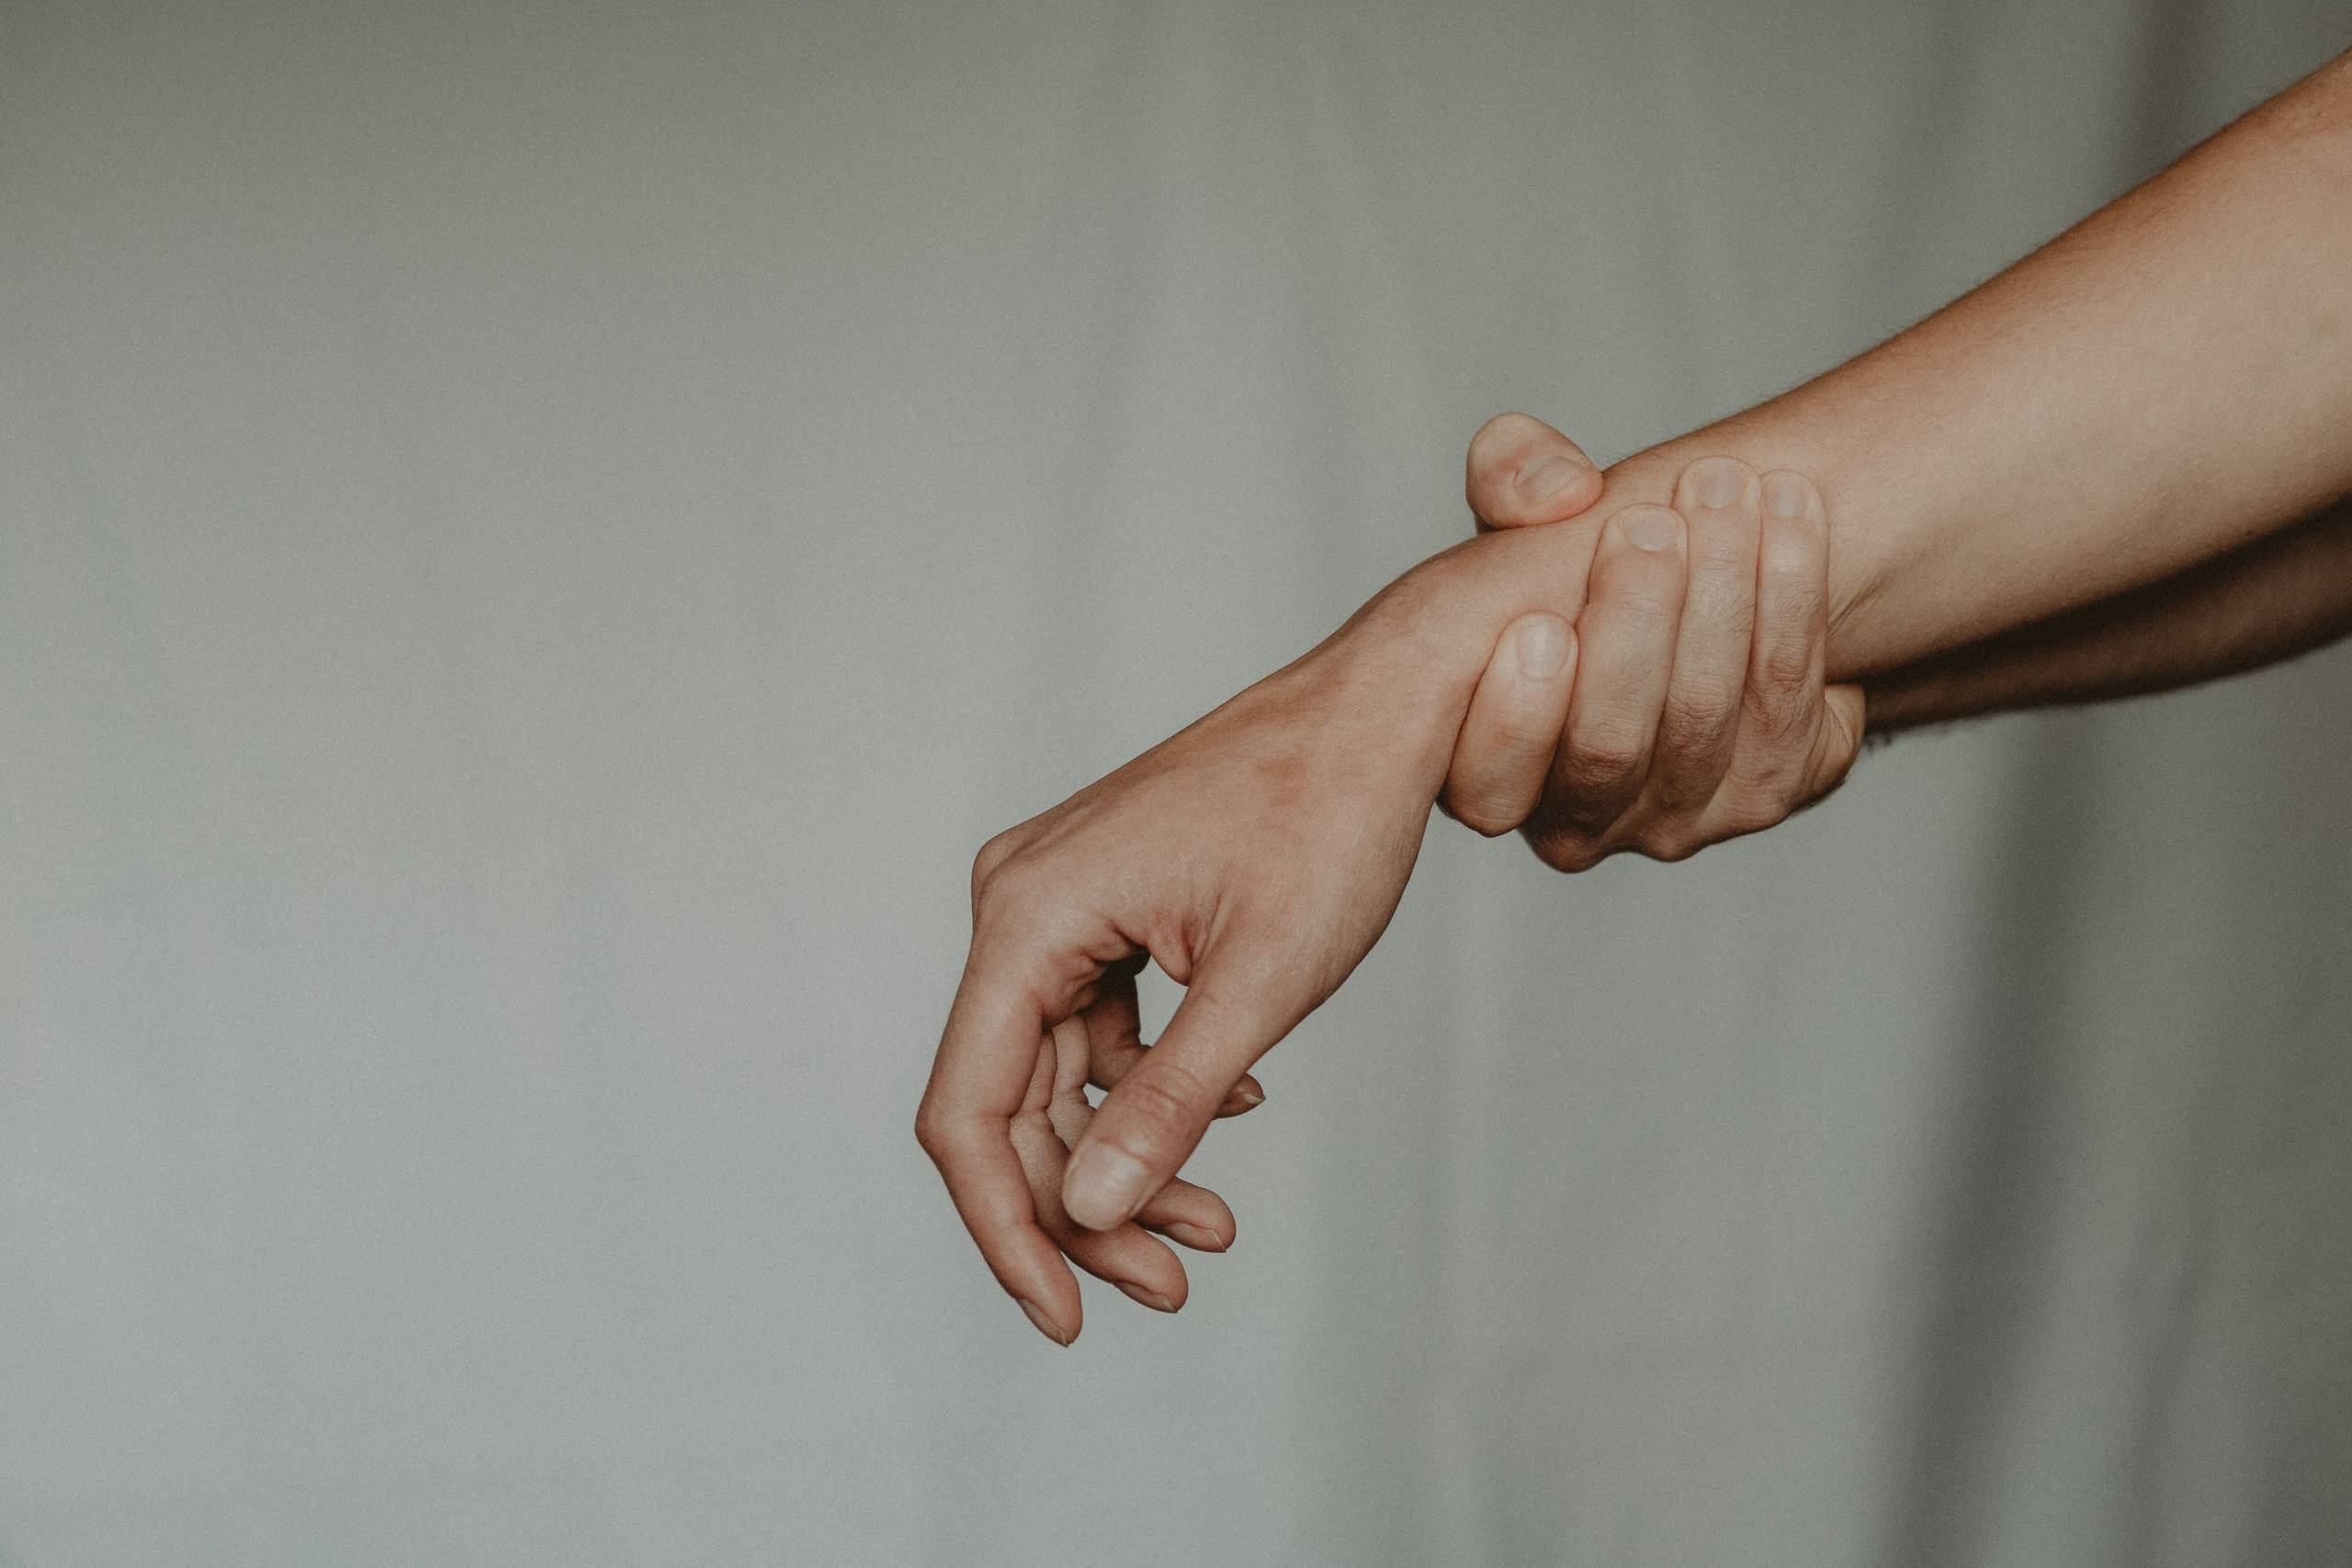 holding your own wrist